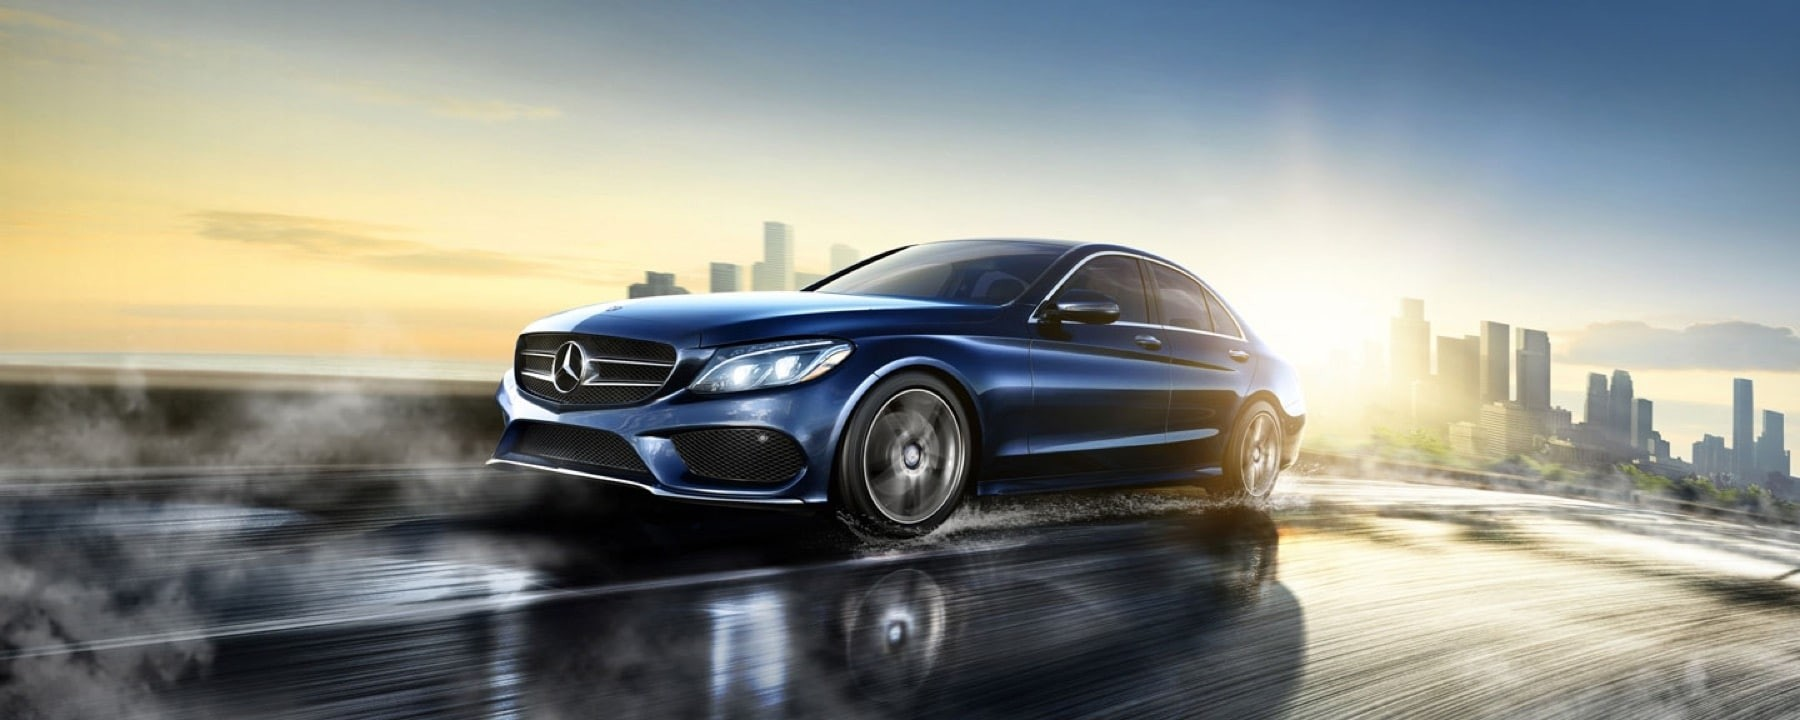 Mercedes benz usa introduces a new video mercedes benz for Mercedes benz financial phone number usa